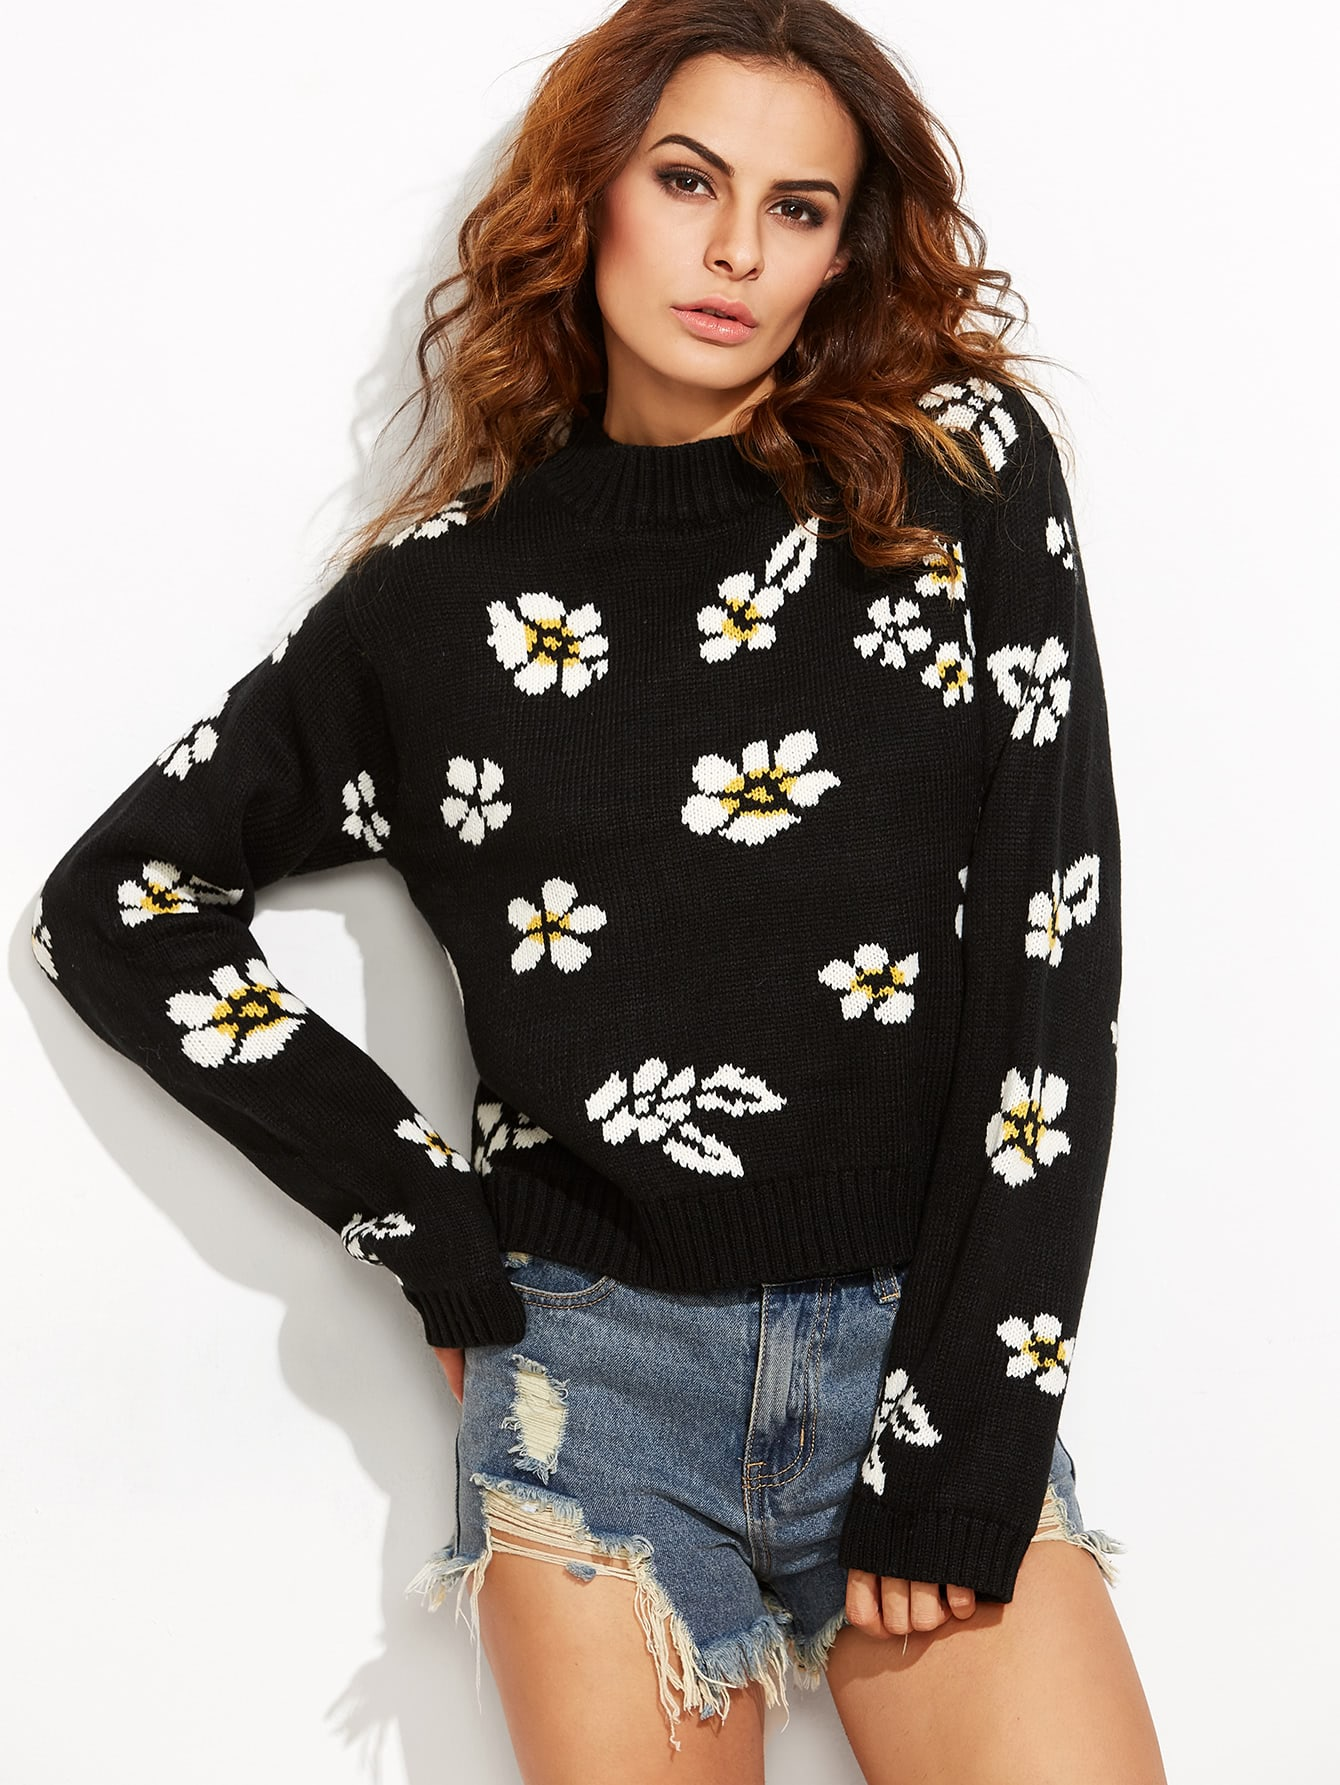 Black Ribbed Trim Pullover Flower Sweater sweater160811701